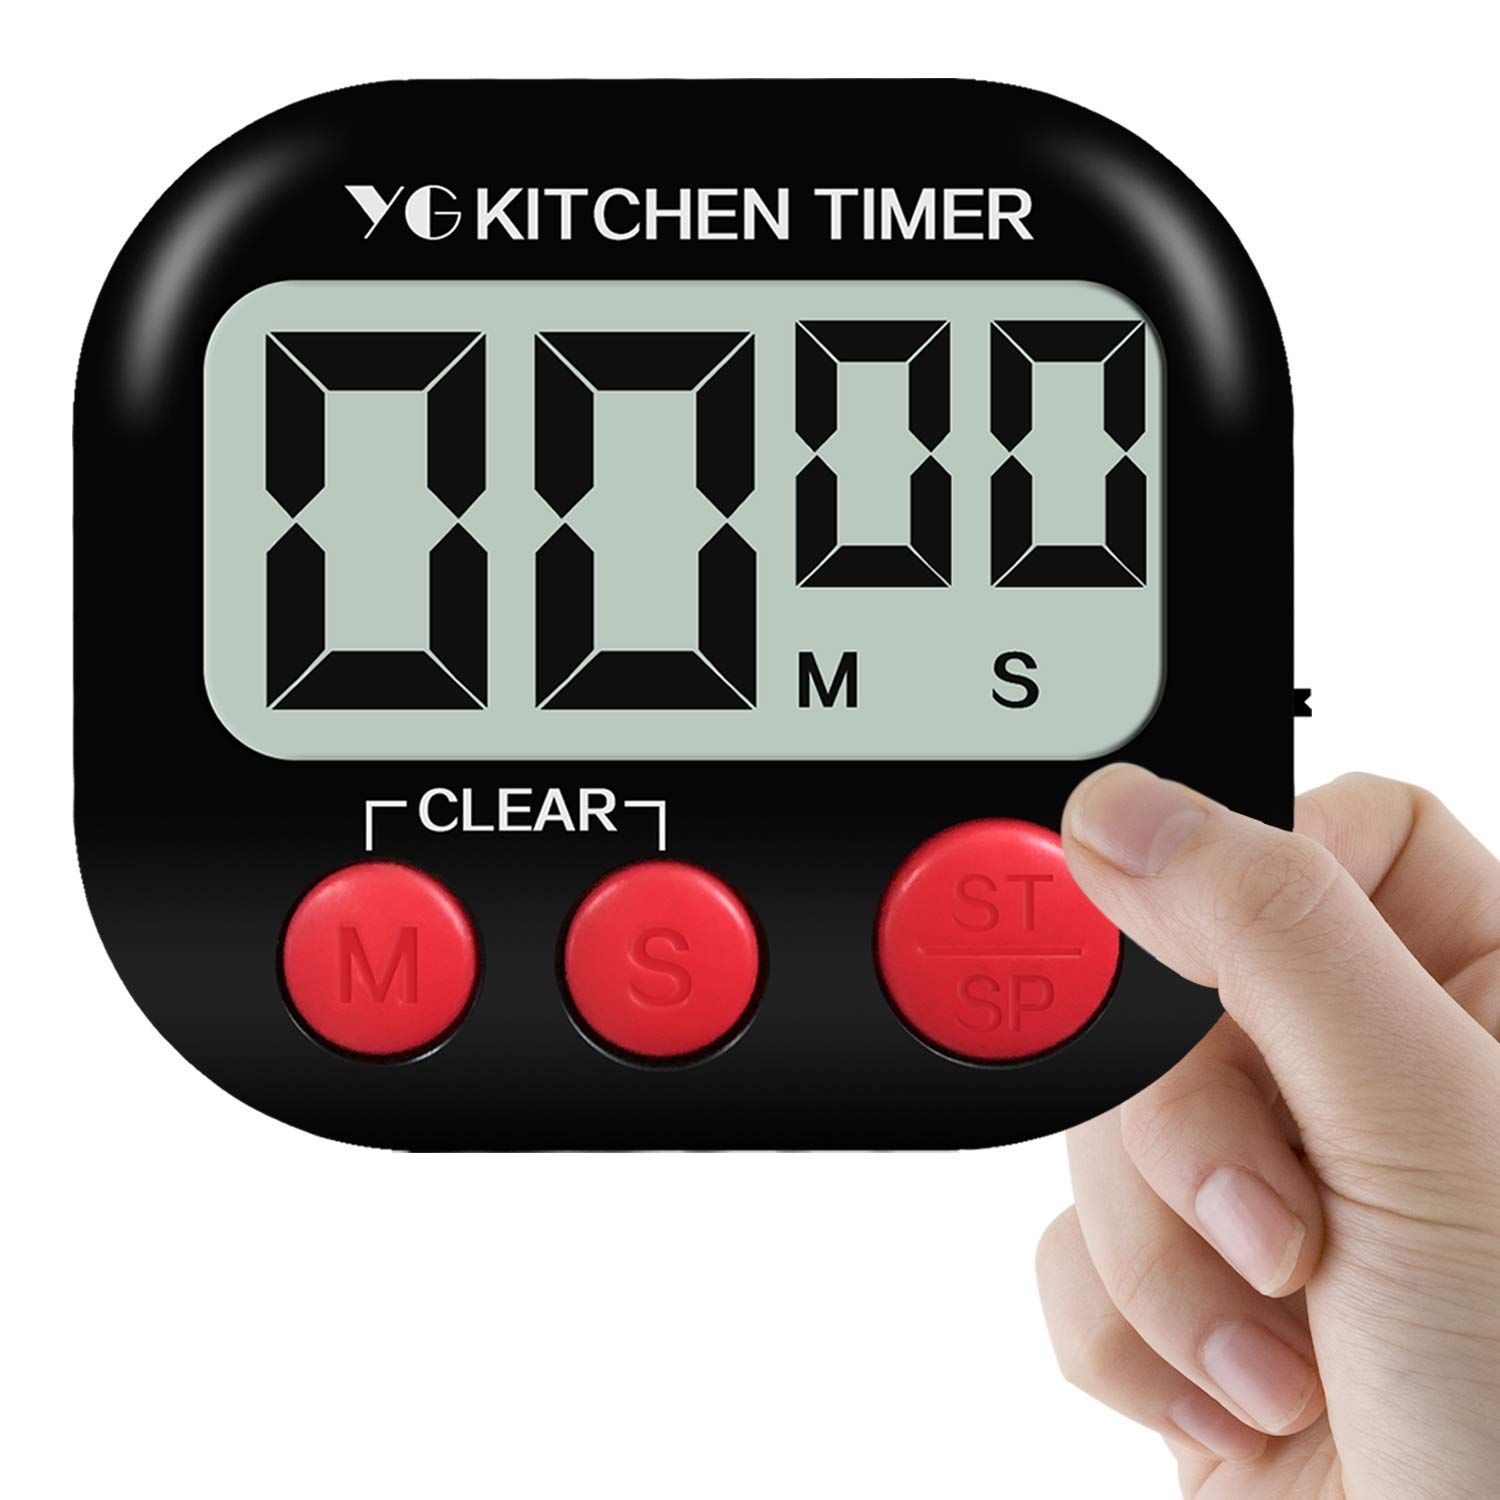 Digital Kitchen Timer, Yuangao 1 pack Cooking Timers, Large LCD Display, Loud Alarm, Magnetic Backing, Easy to Operate For Cooking, Baking, Sports, Games, Facial(Battery included, Black)